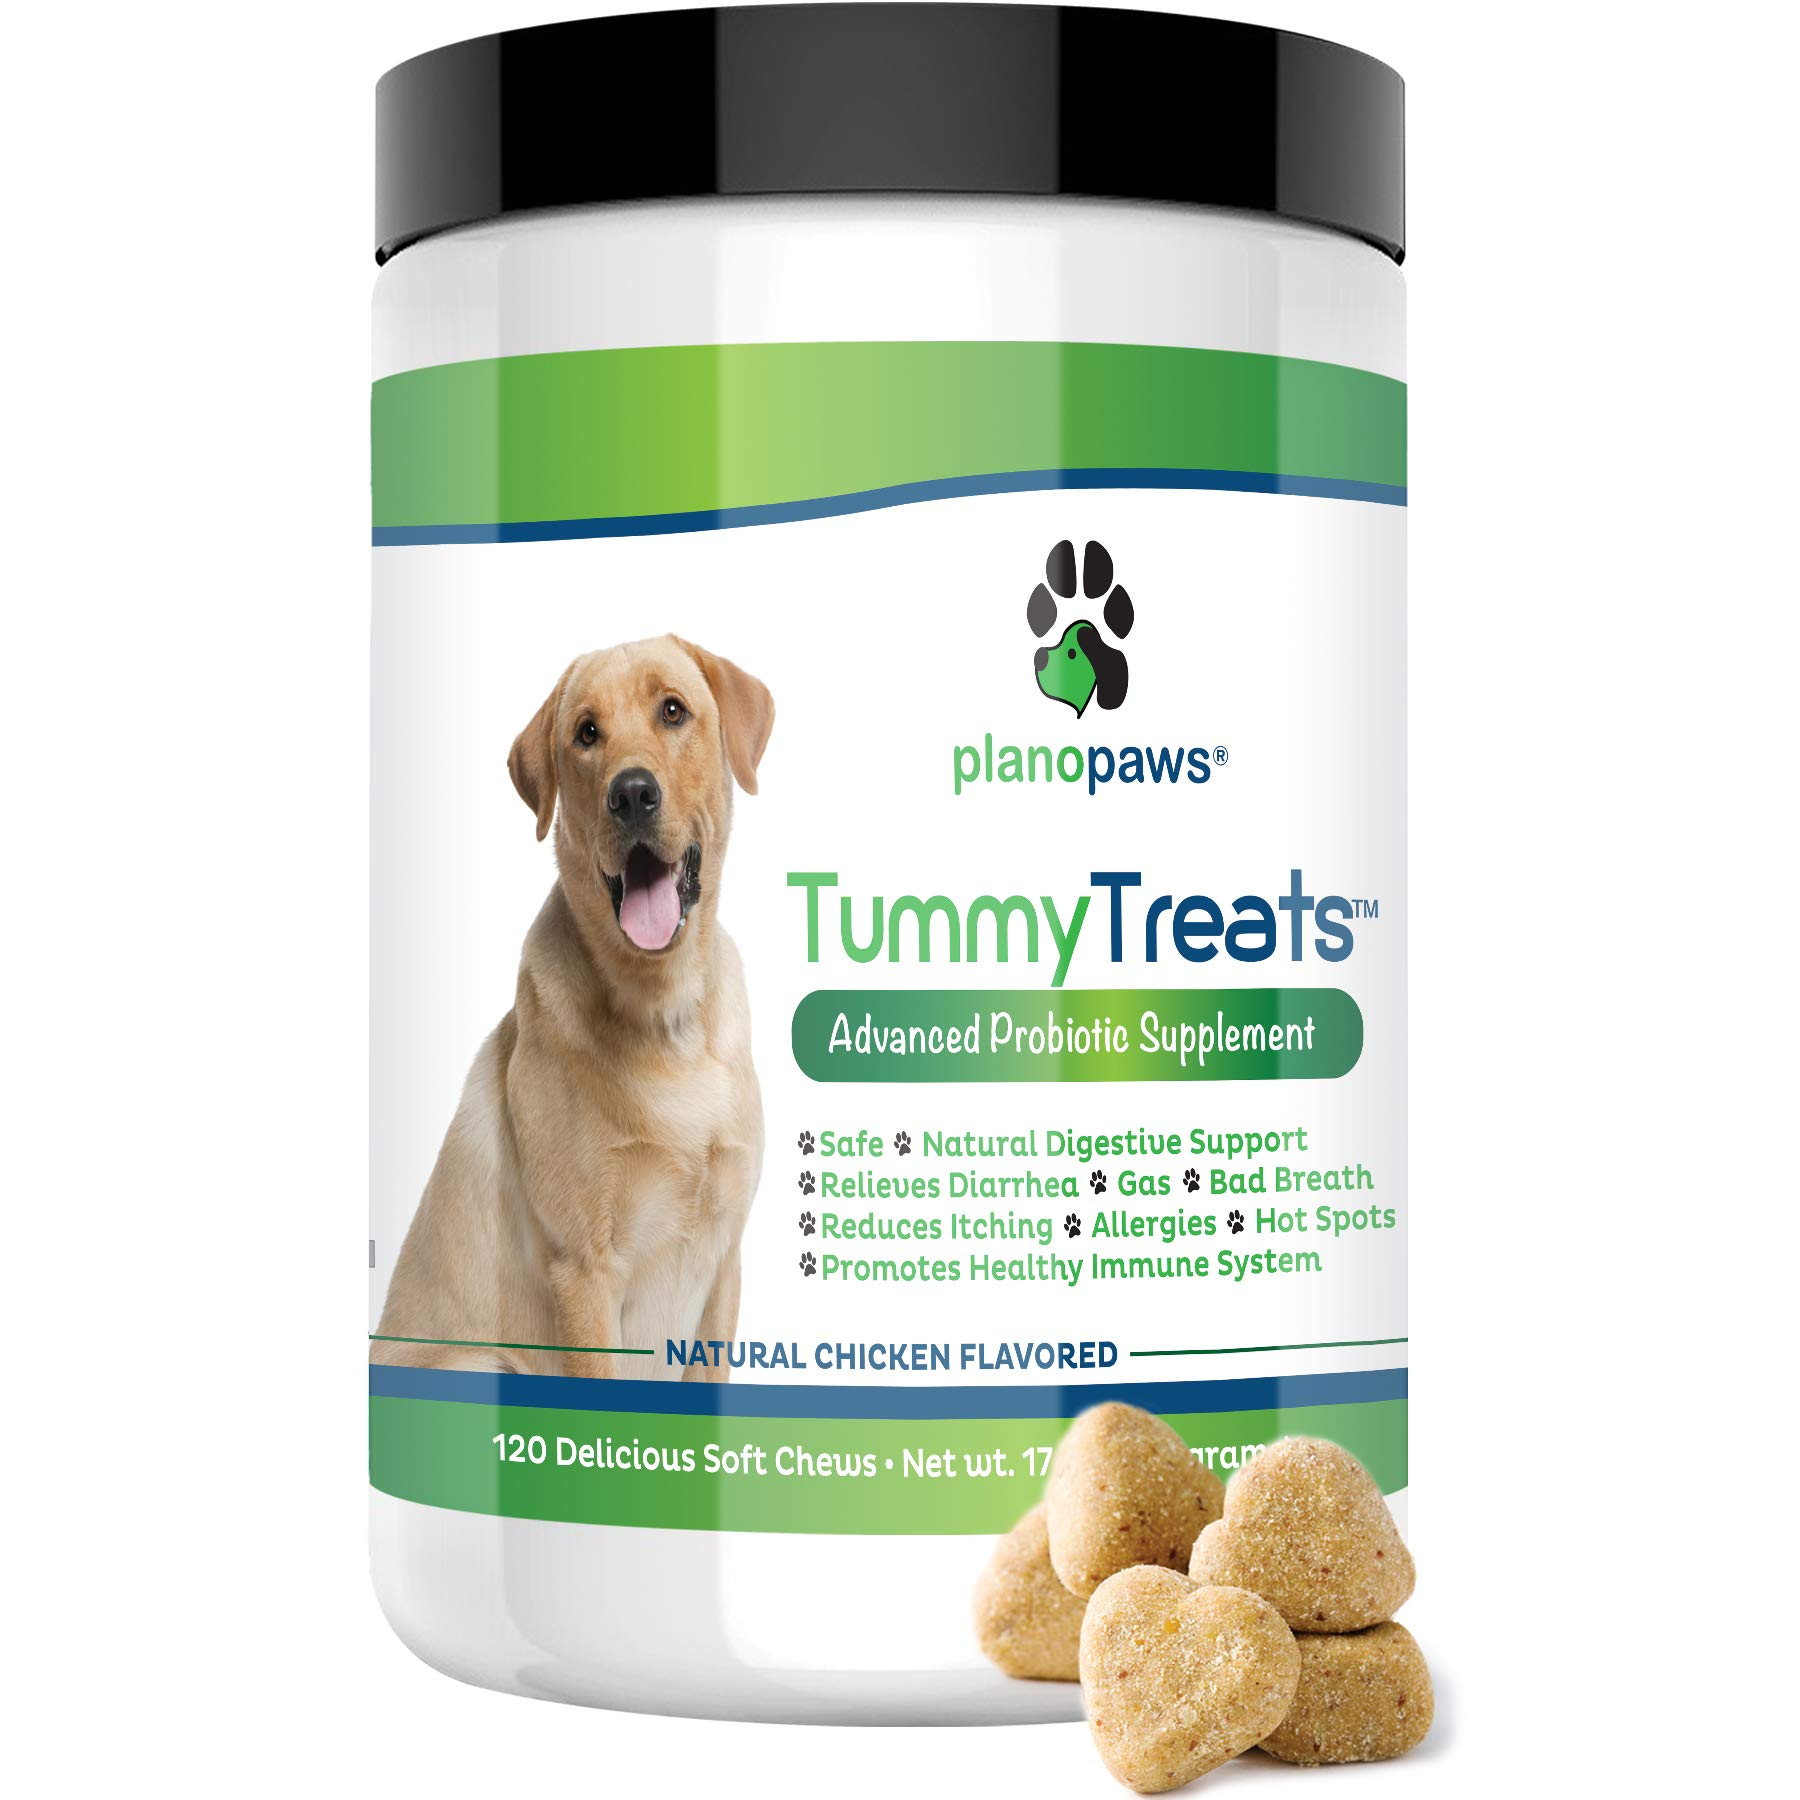 Tummy Treats - Probiotics for Dogs - Safe All Natural Dog Allergy Medicine - Dog Breath Treats - Helps Hot Spots - Yeast Infection - Constipation - Diarrhea - 120 Count - Probiotic & Digestive Enzymes by planopaws